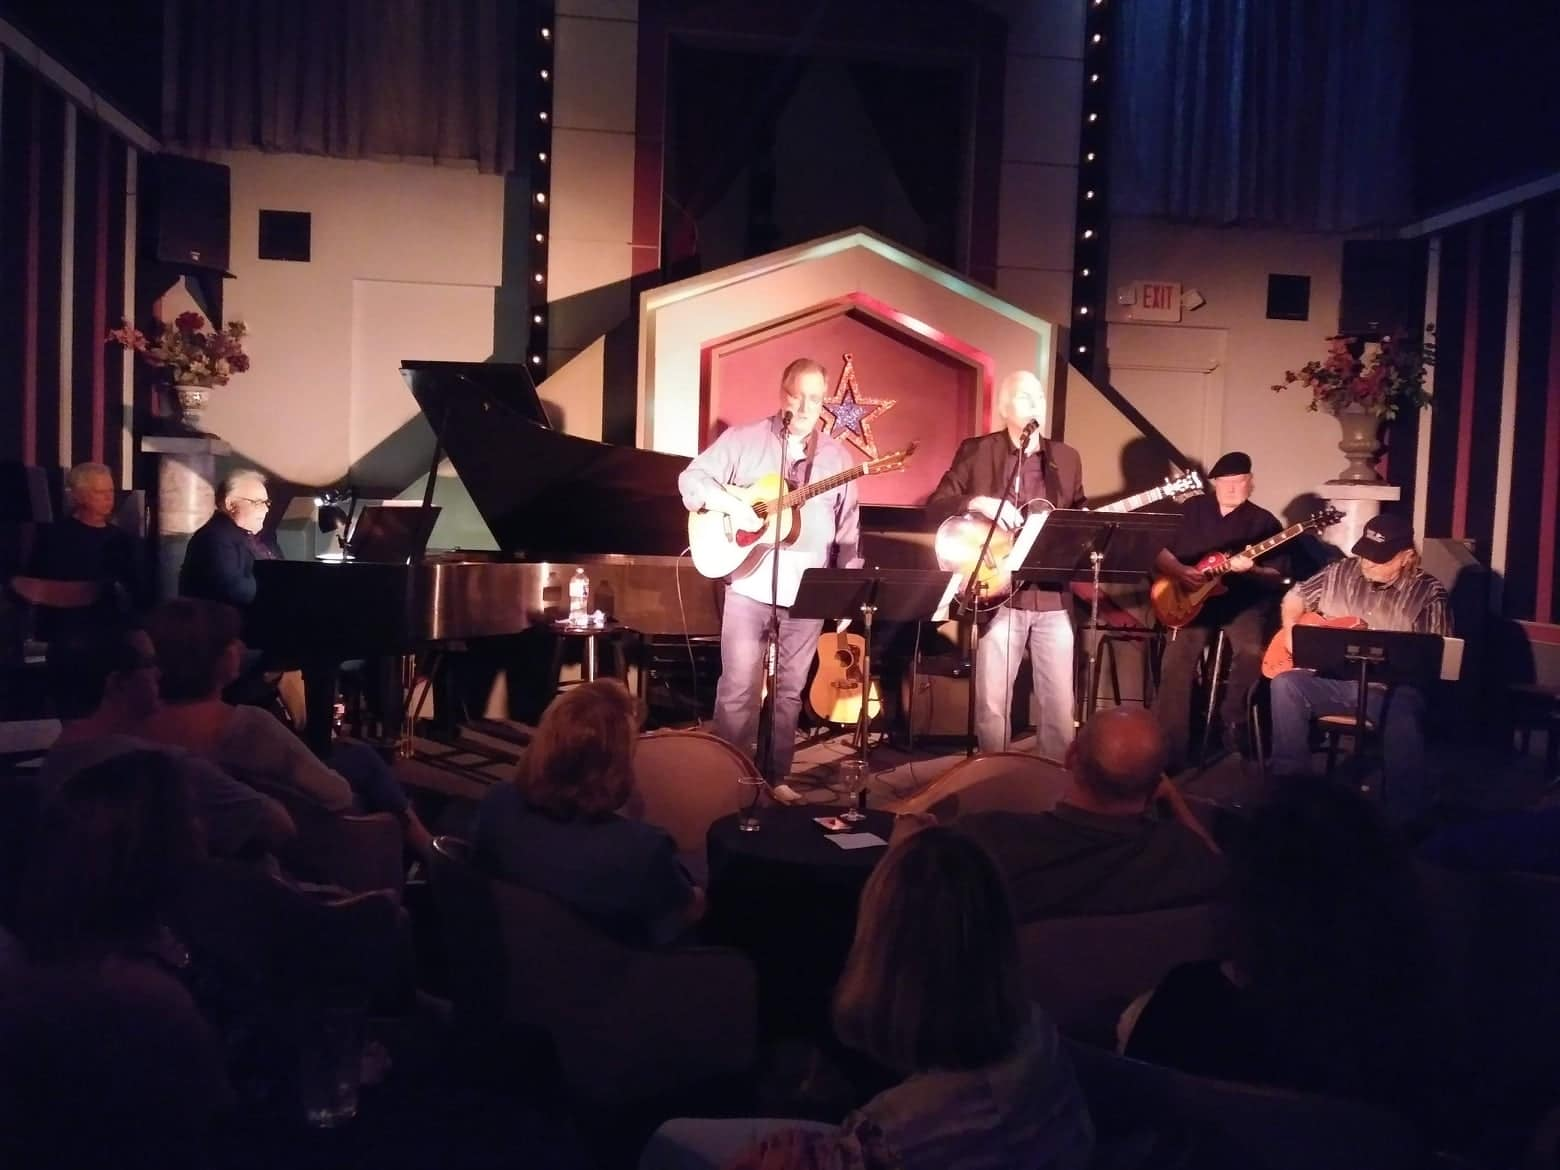 Dennis Welch and band in Ovations club, Houston Texas